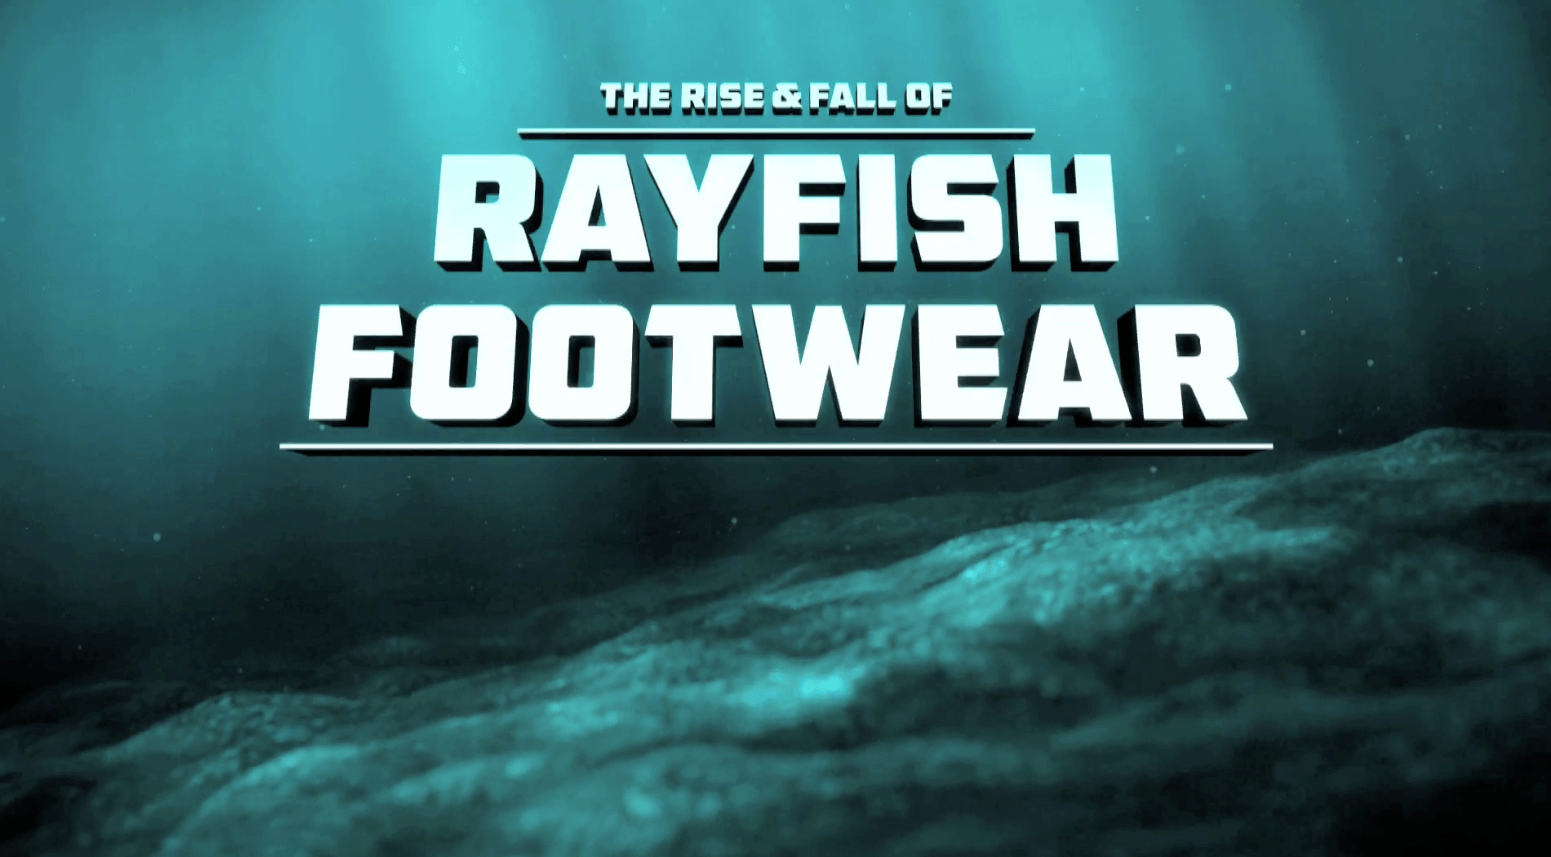 Visual of The Rise and Fall or Rayfish Footwear